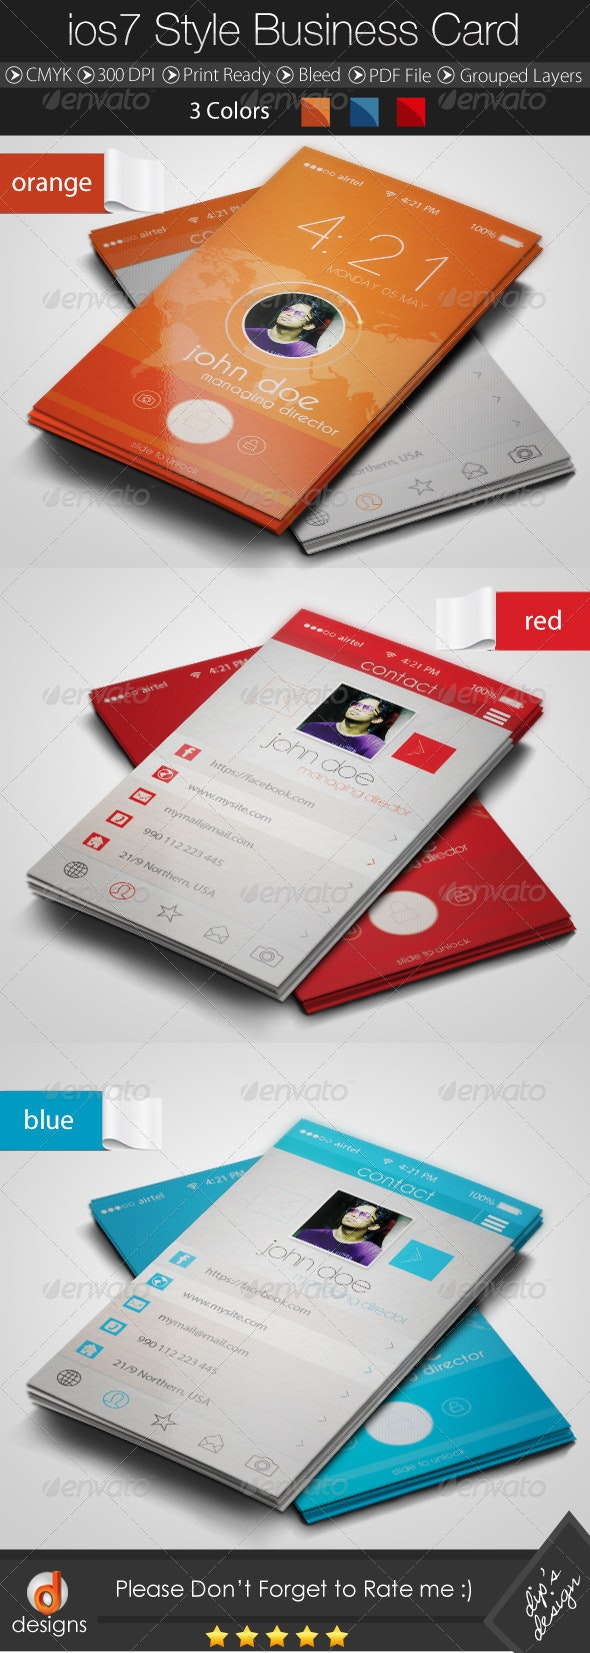 IOS 7 Style Business Card - Creative Business Cards